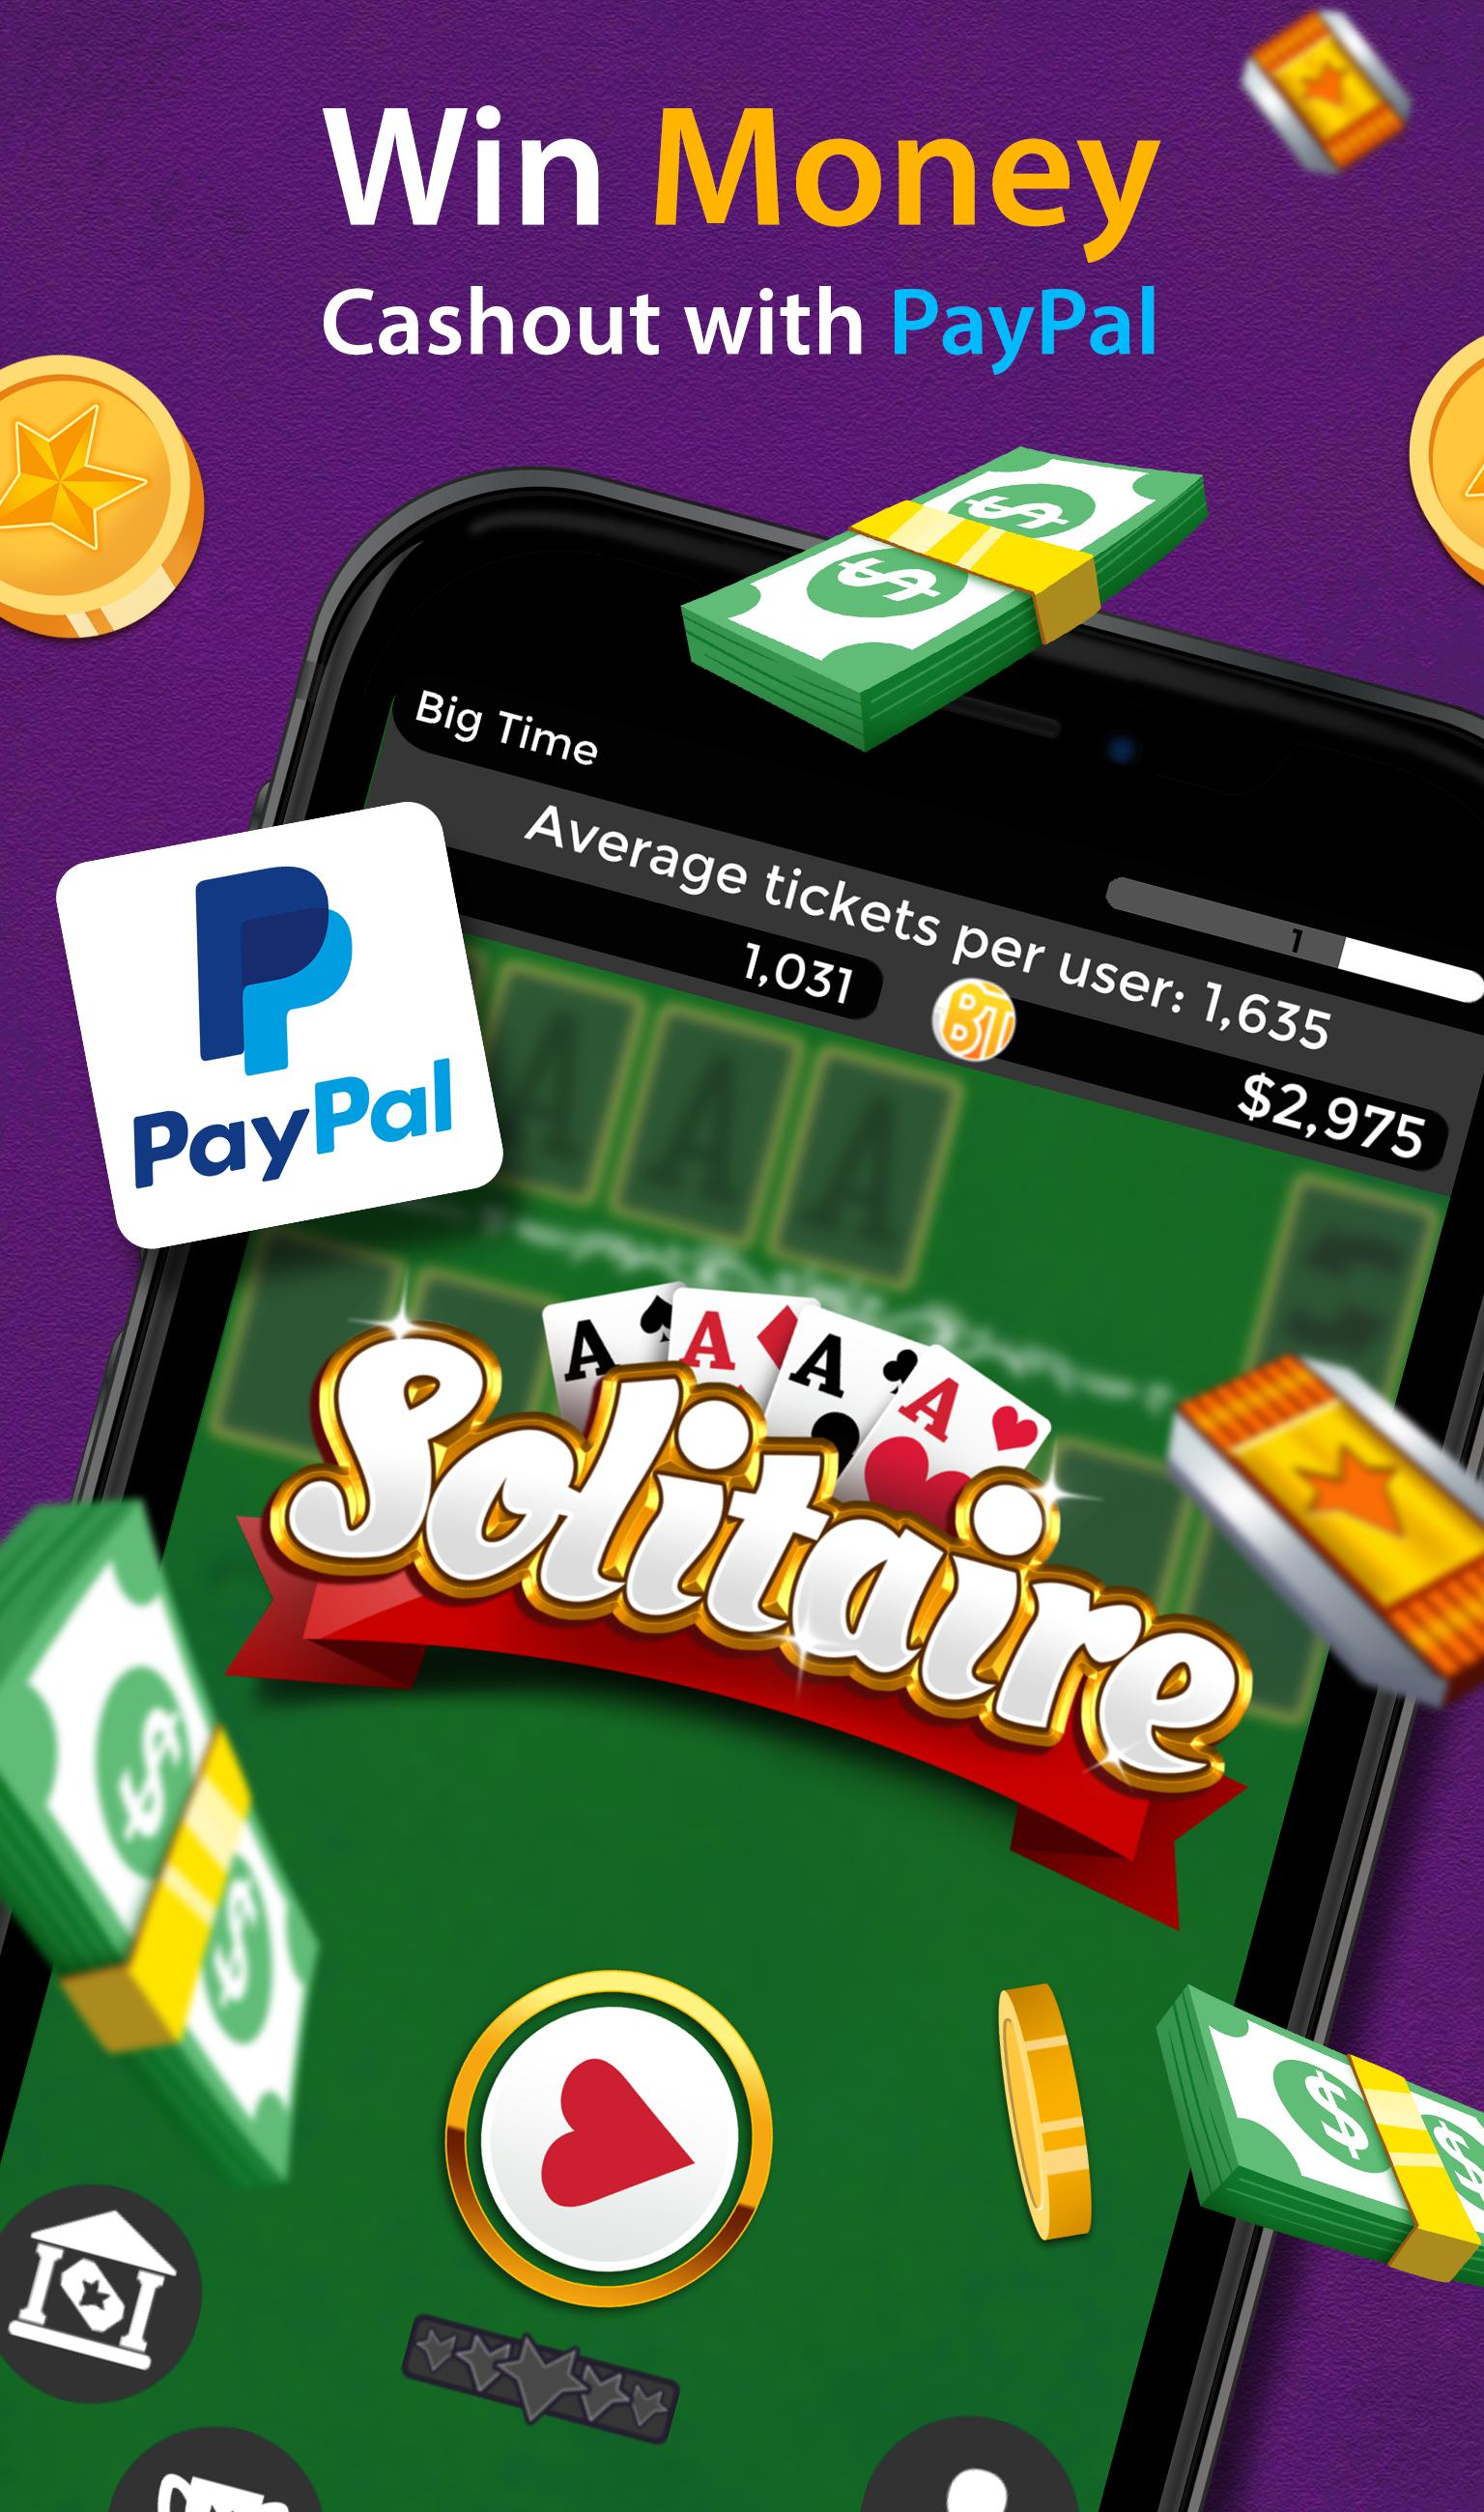 Solitaire Make Free Money and Play the Card Game 1.8.5 Screenshot 2